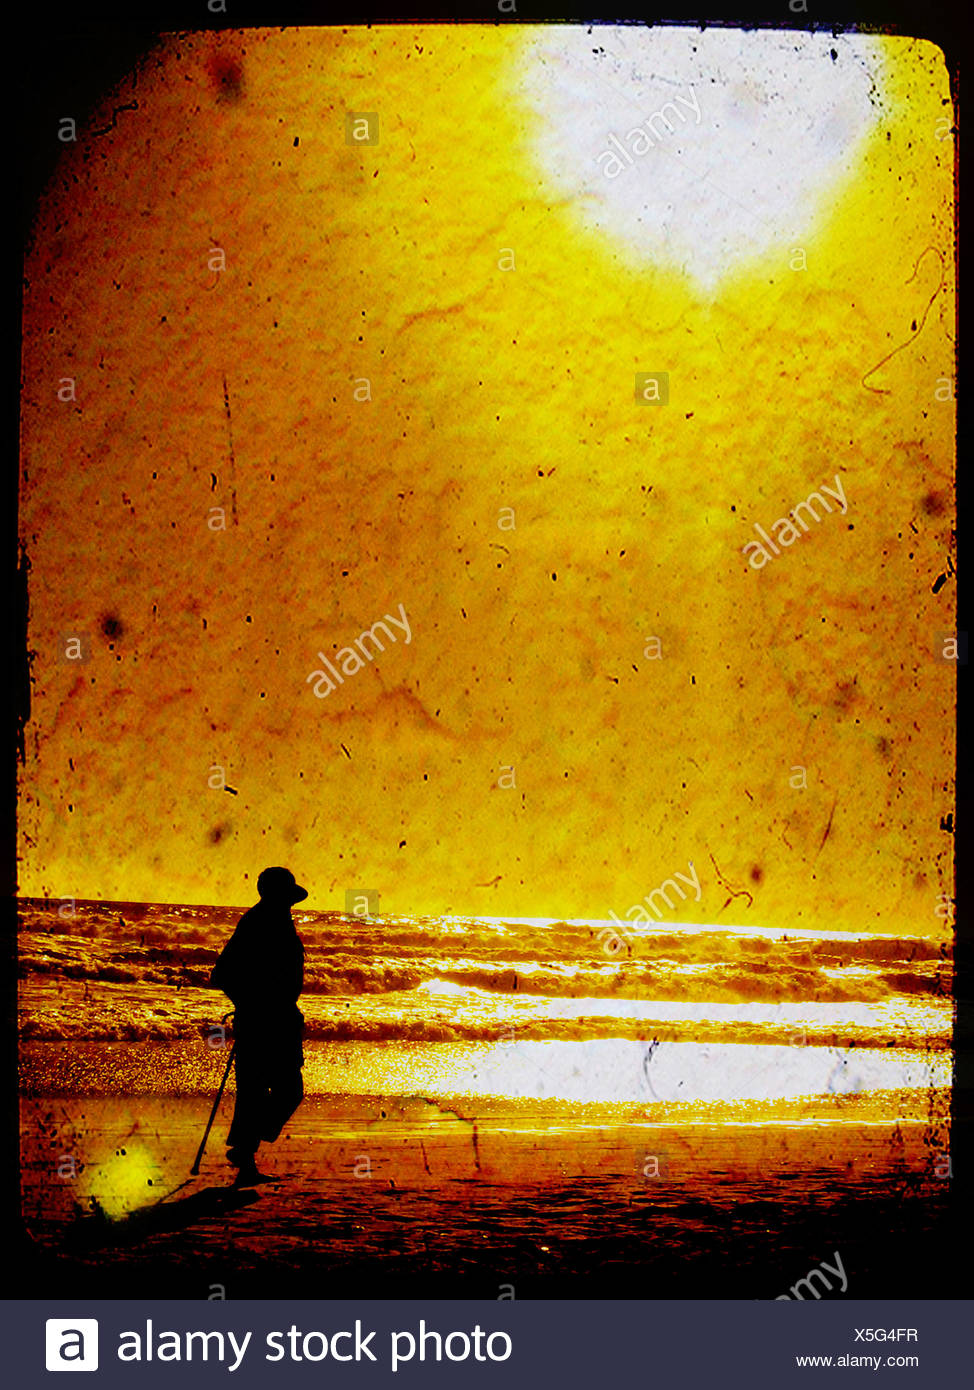 The silhouette of an adult figure walking on the beach with a setting sun - Stock Image